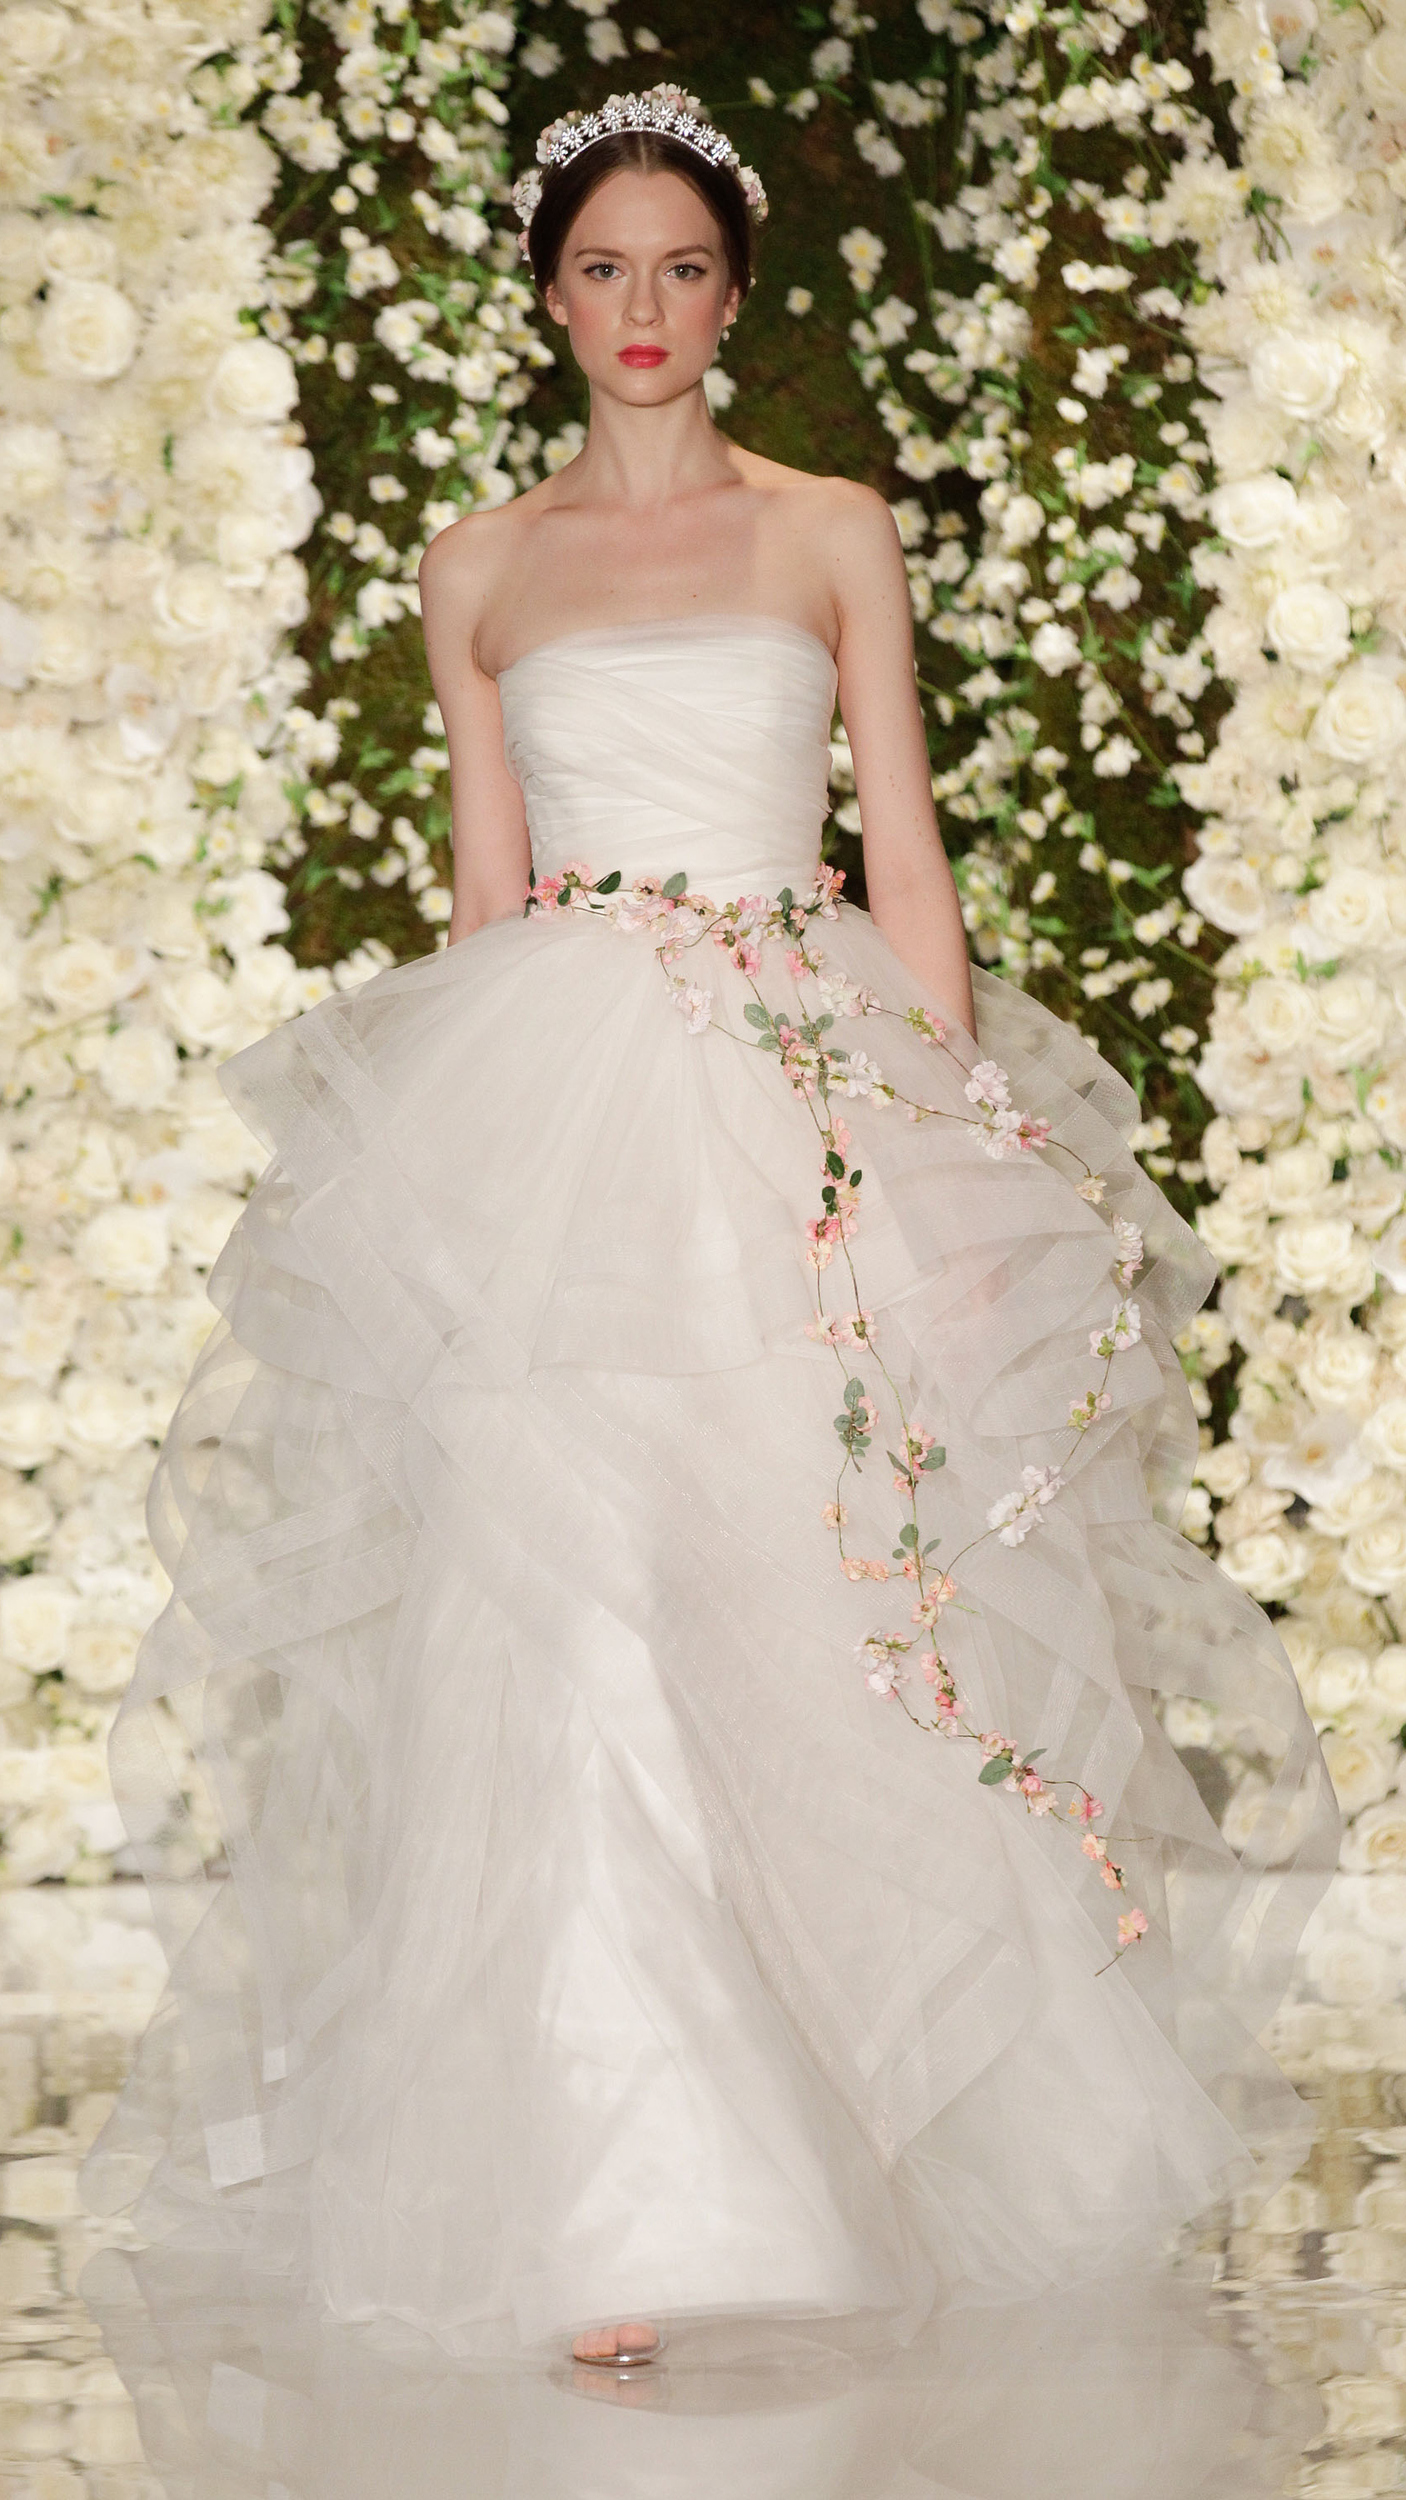 The most beautiful wedding gowns from Fall 2015 Bridal - AOL Lifestyle